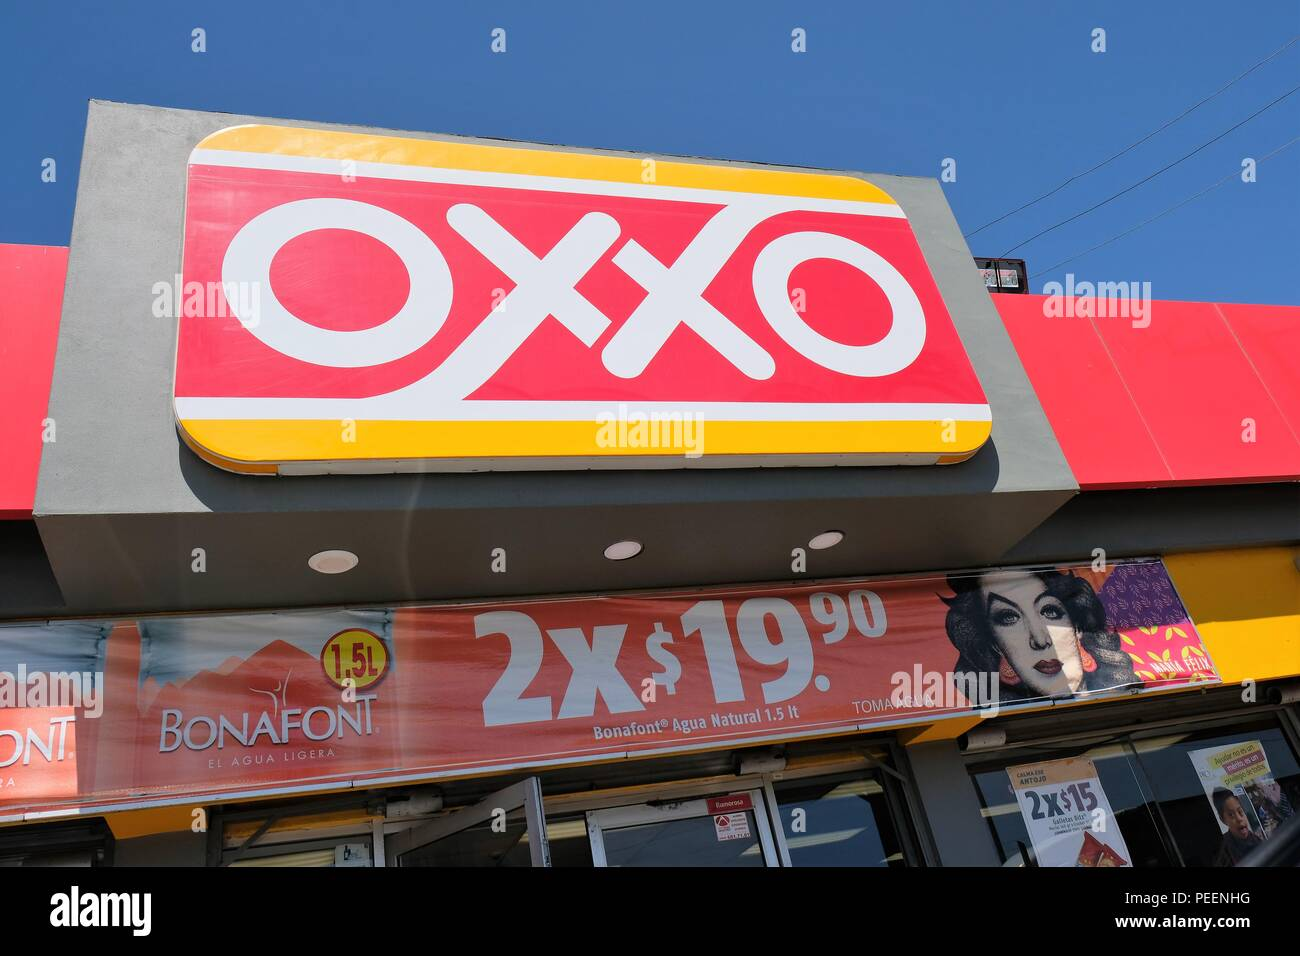 Oxxo convenience store in Mexico with a banner using the image of Mexican film star Maria Felix to advertise the sale of Bonafont bottled water. - Stock Image